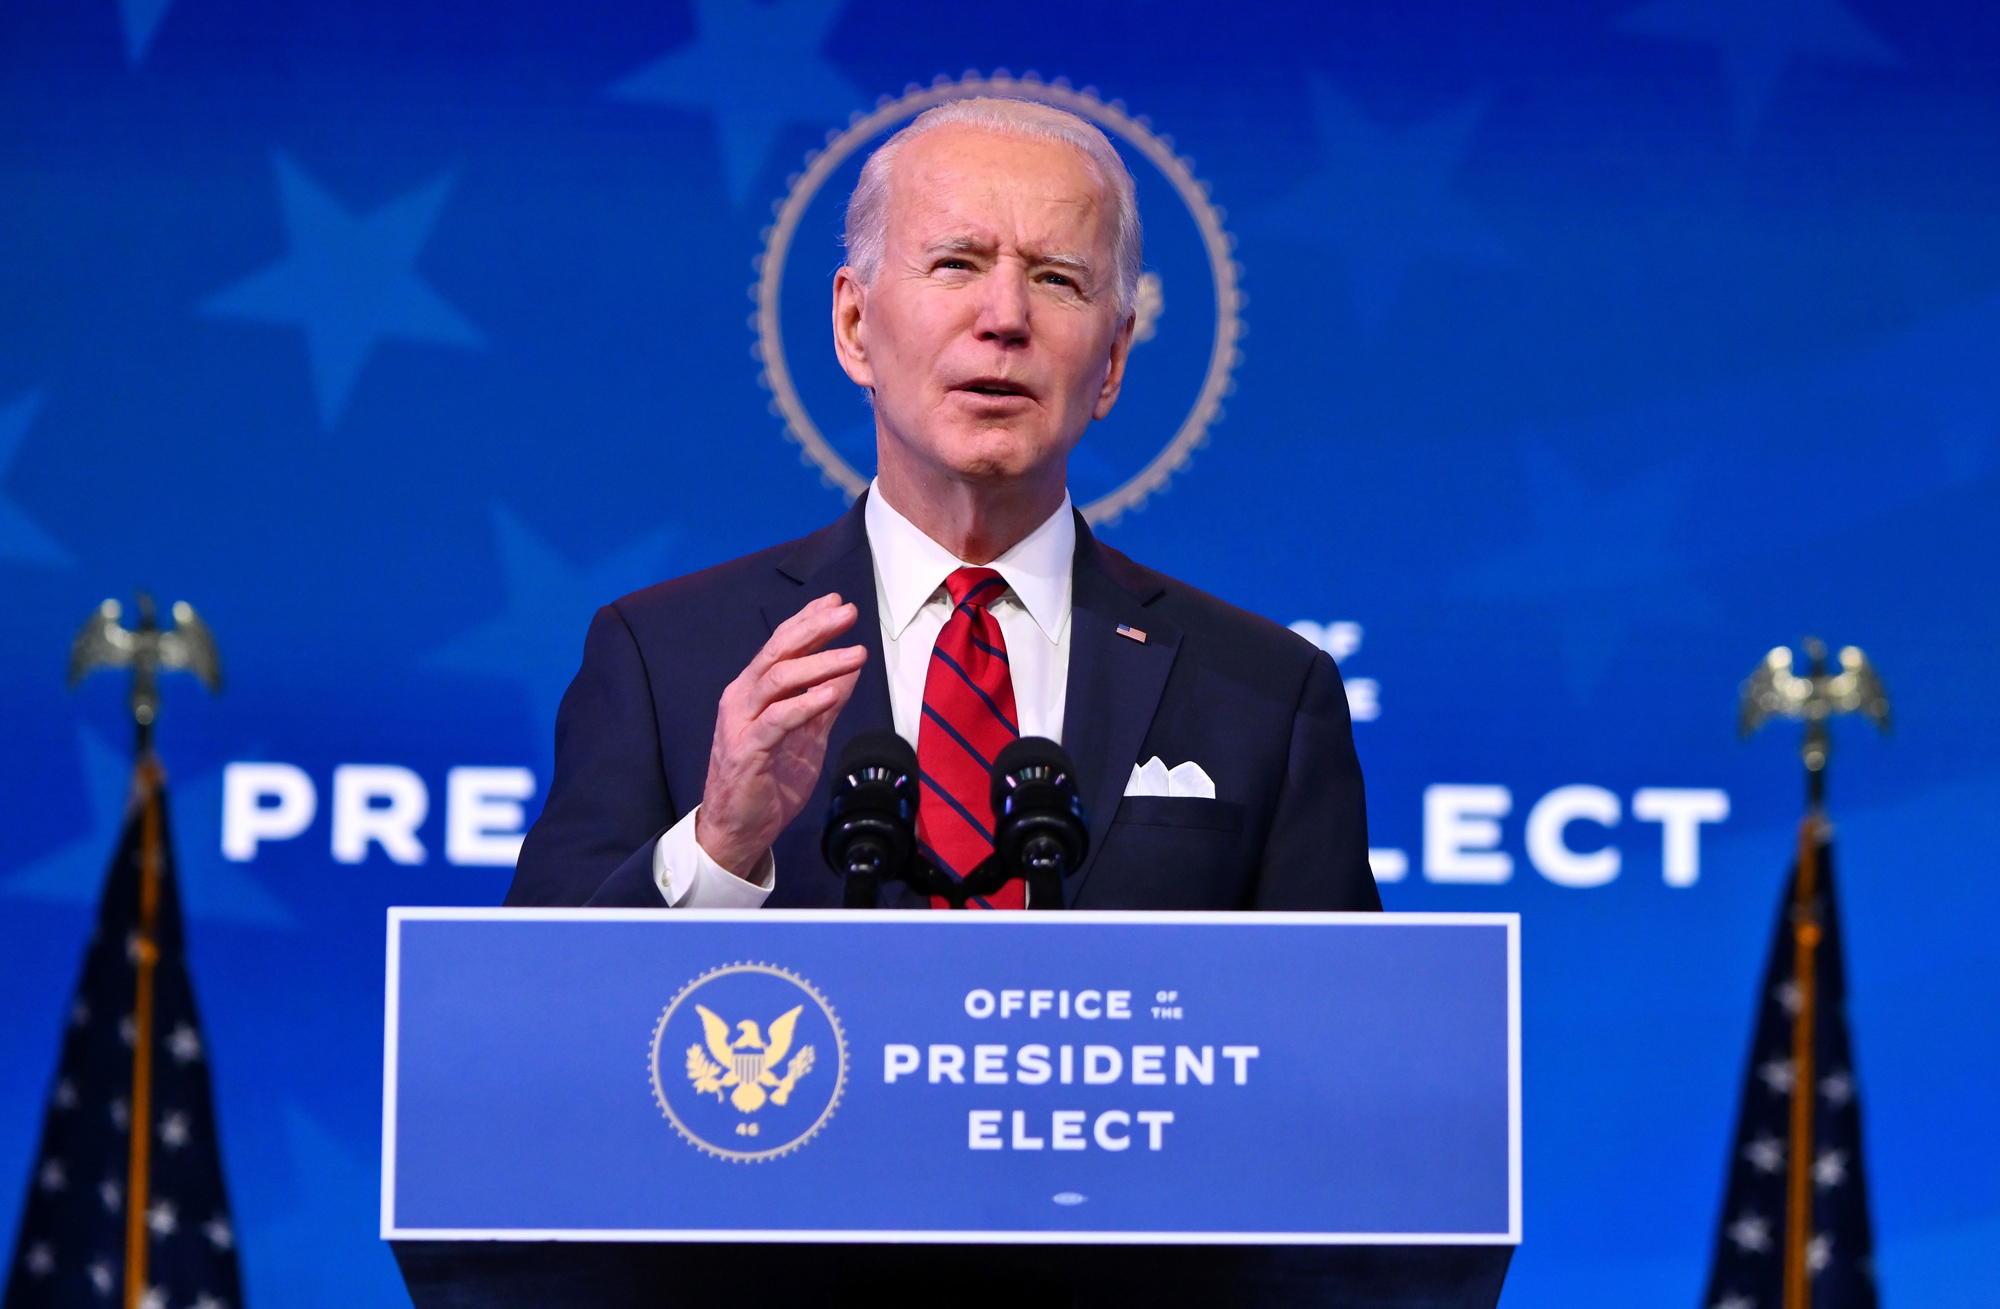 President-elect Joe Biden delivers remarks on his plan to administer Covid-19 vaccines at The Queen theater in Wilmington, Delaware on January 15.